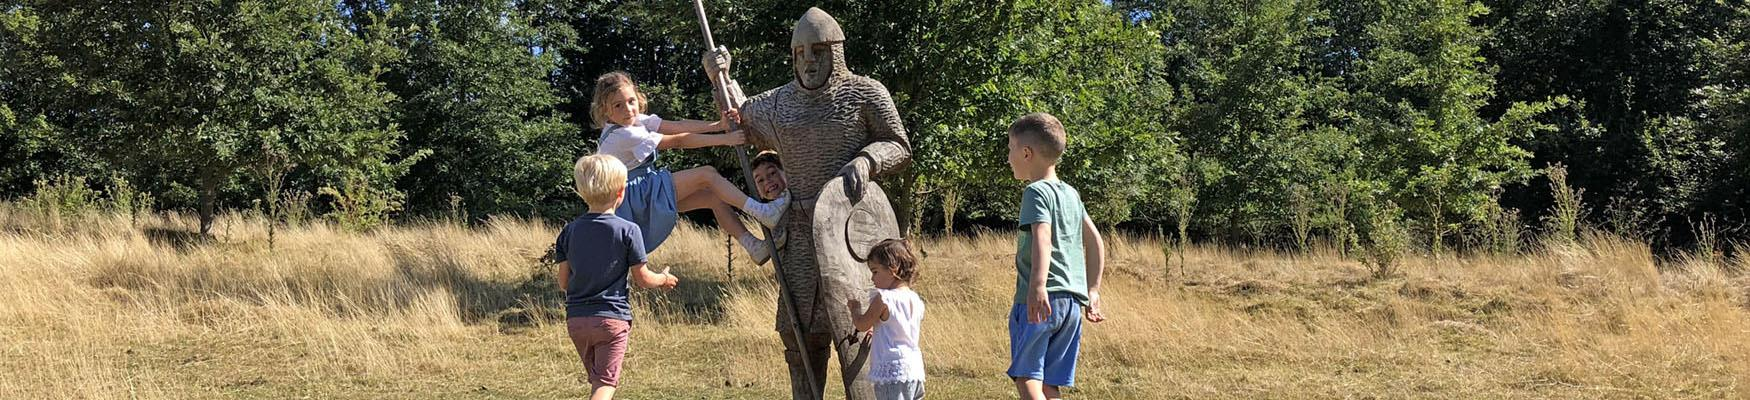 Children playing on a soldier statue